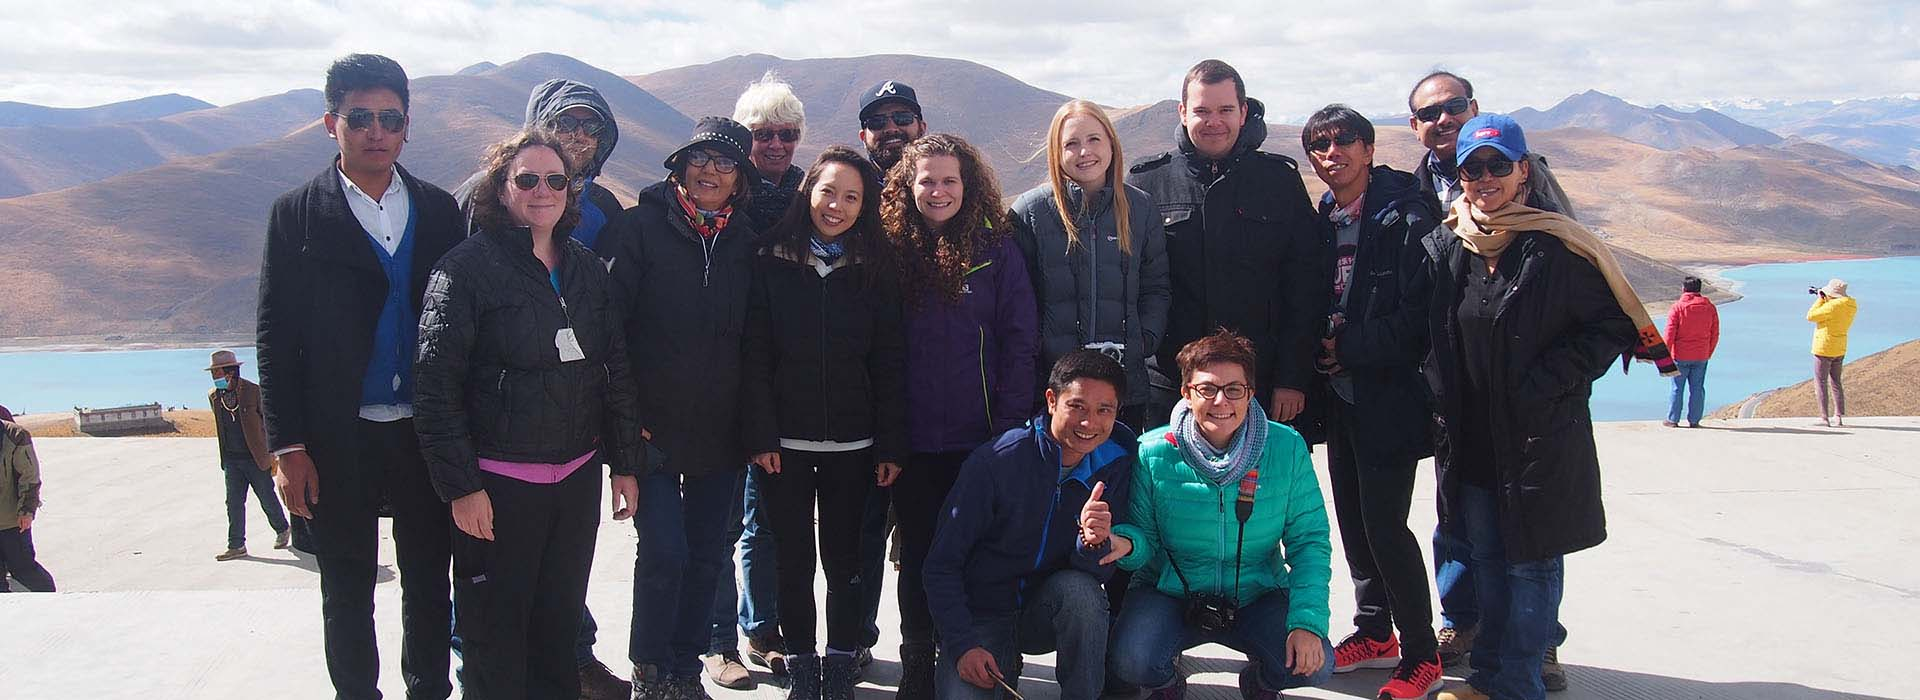 Join-in Tibet Group tours with affordable price!